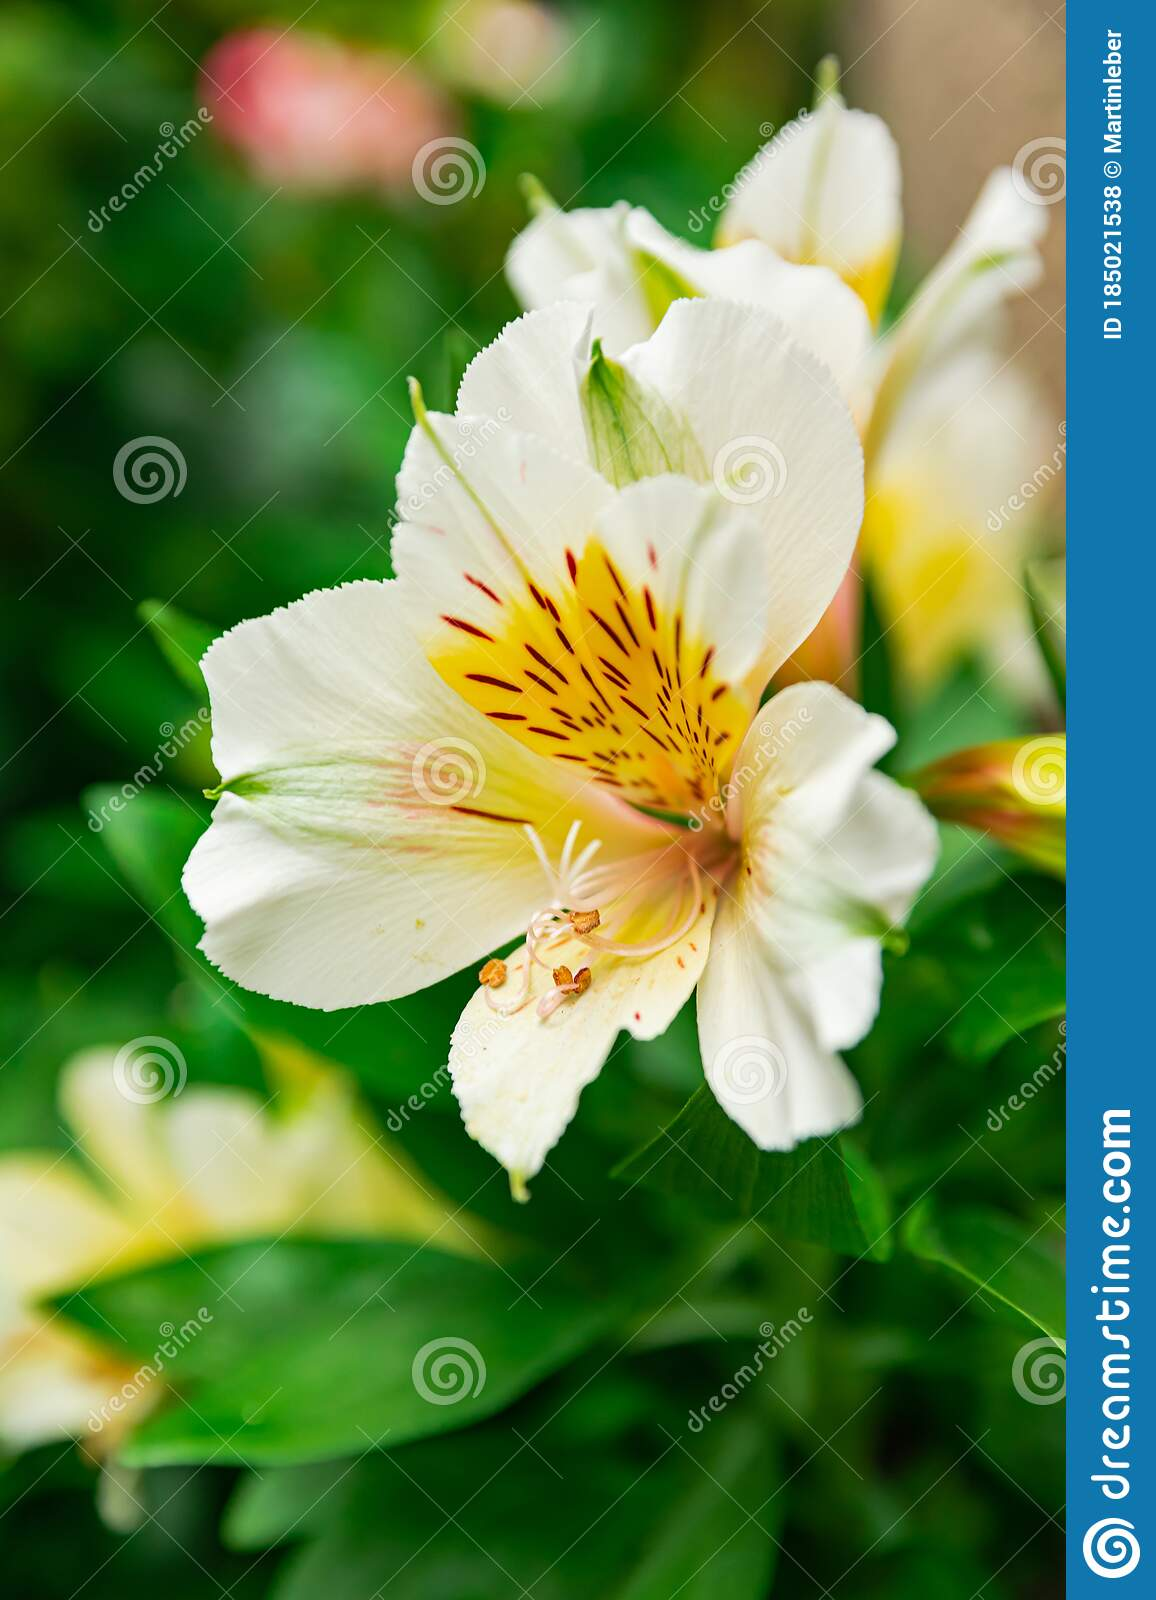 White Peruvian Lily Alstroemeria Blooming Stock Photo Image Of Alstroemeria Freshness 185021538